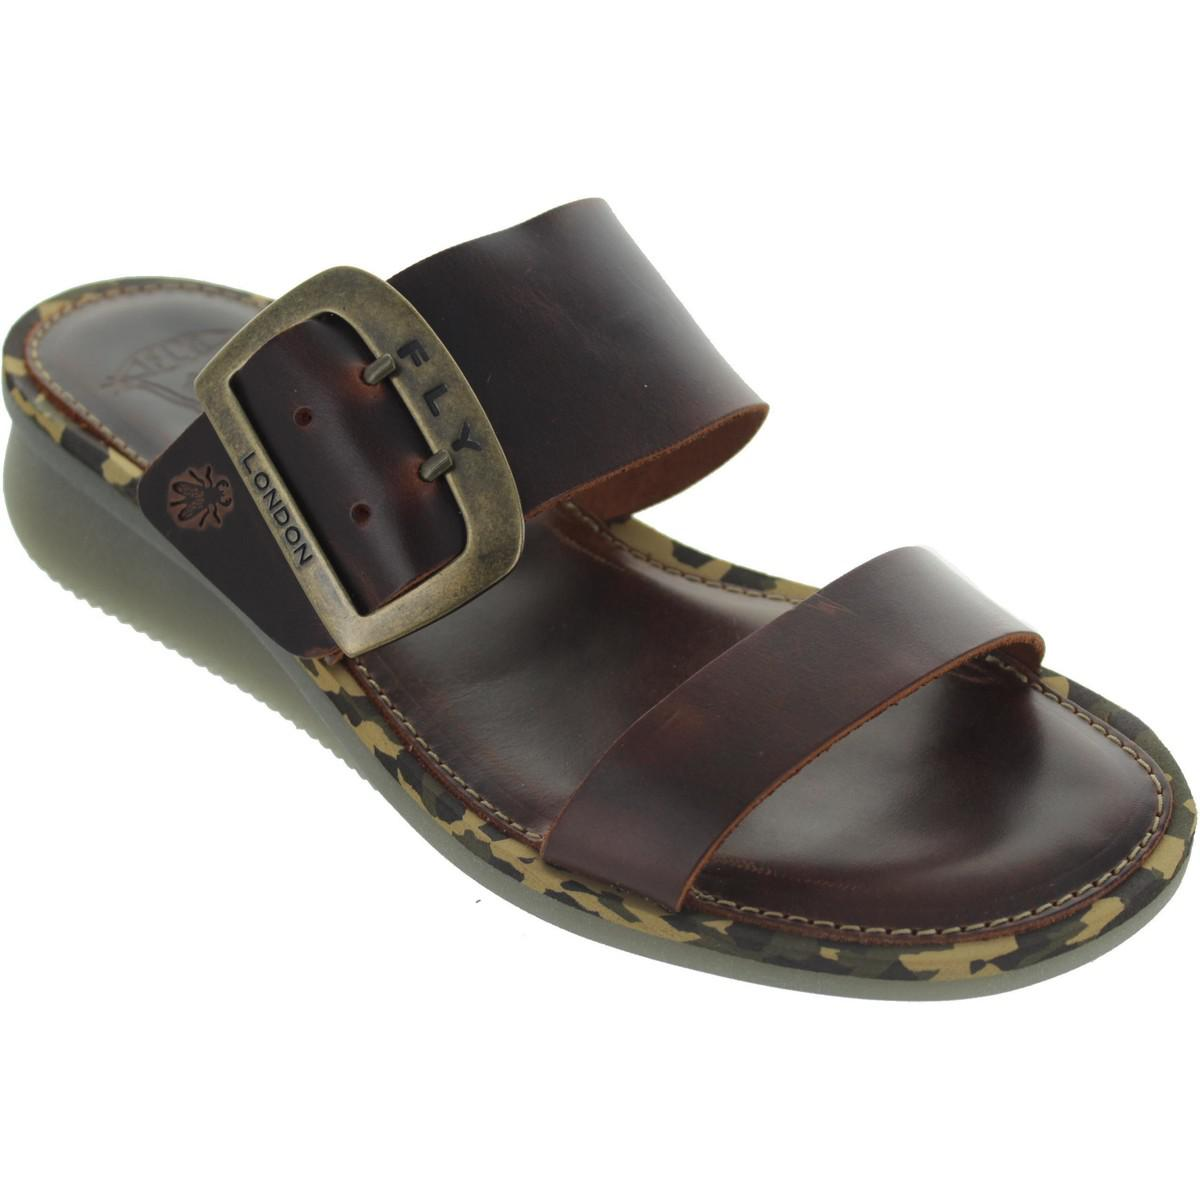 9695c28fc76c3f Fly London Cape Women s Sandals In Brown in Brown - Lyst